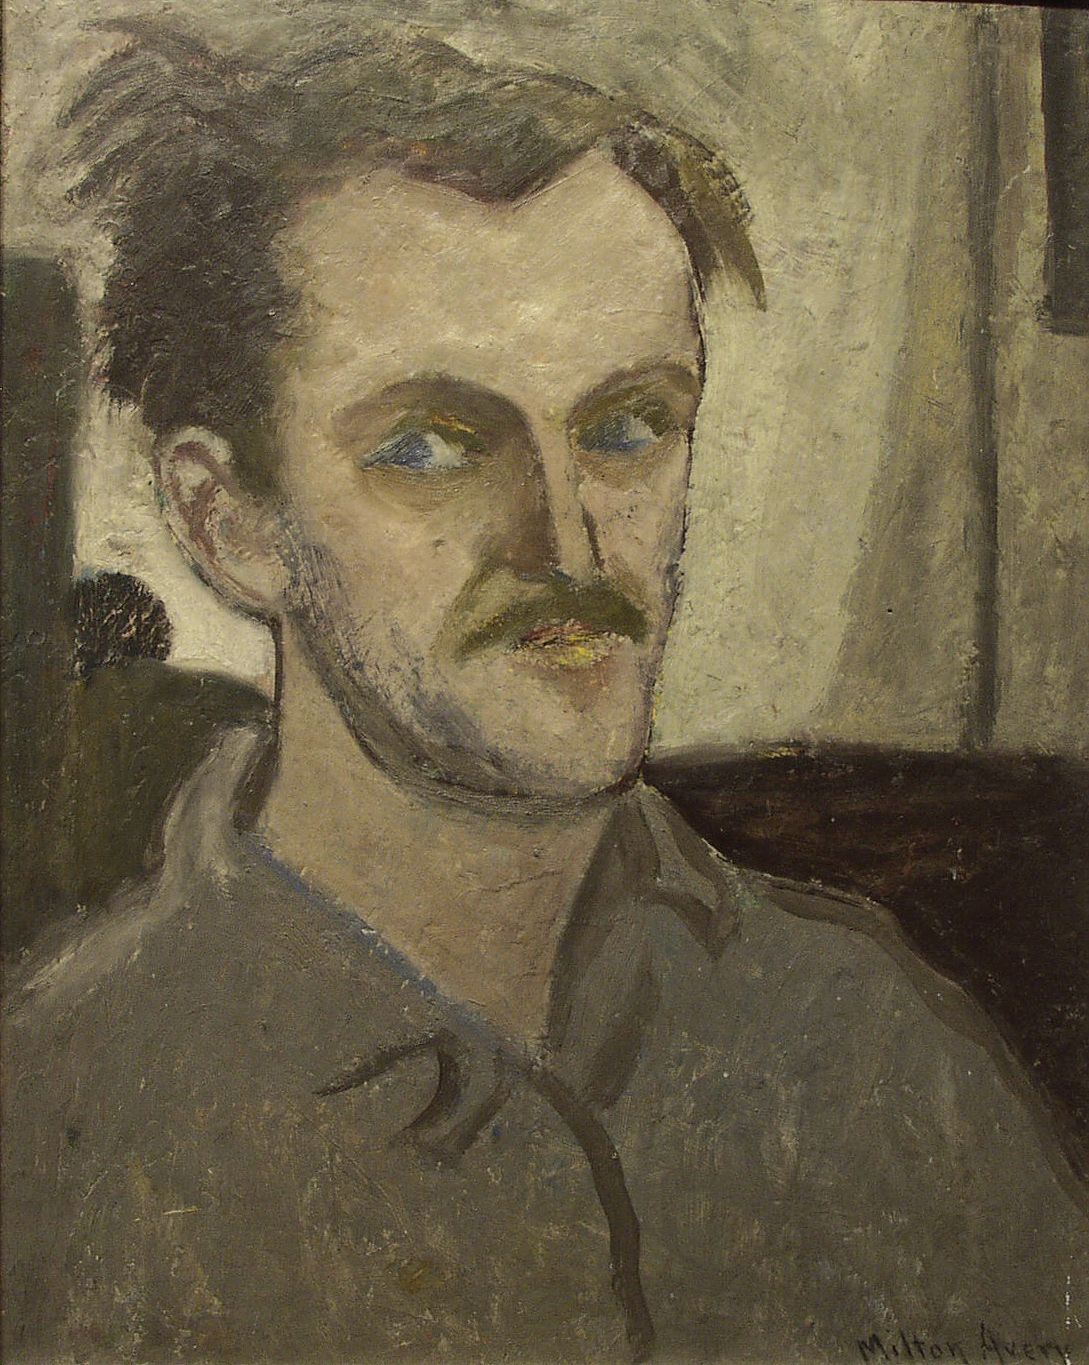 Milton Avery, Untitled Self-Portrait, c. 1935, oil on panel, 19 3/4 x 17 3/4 inches